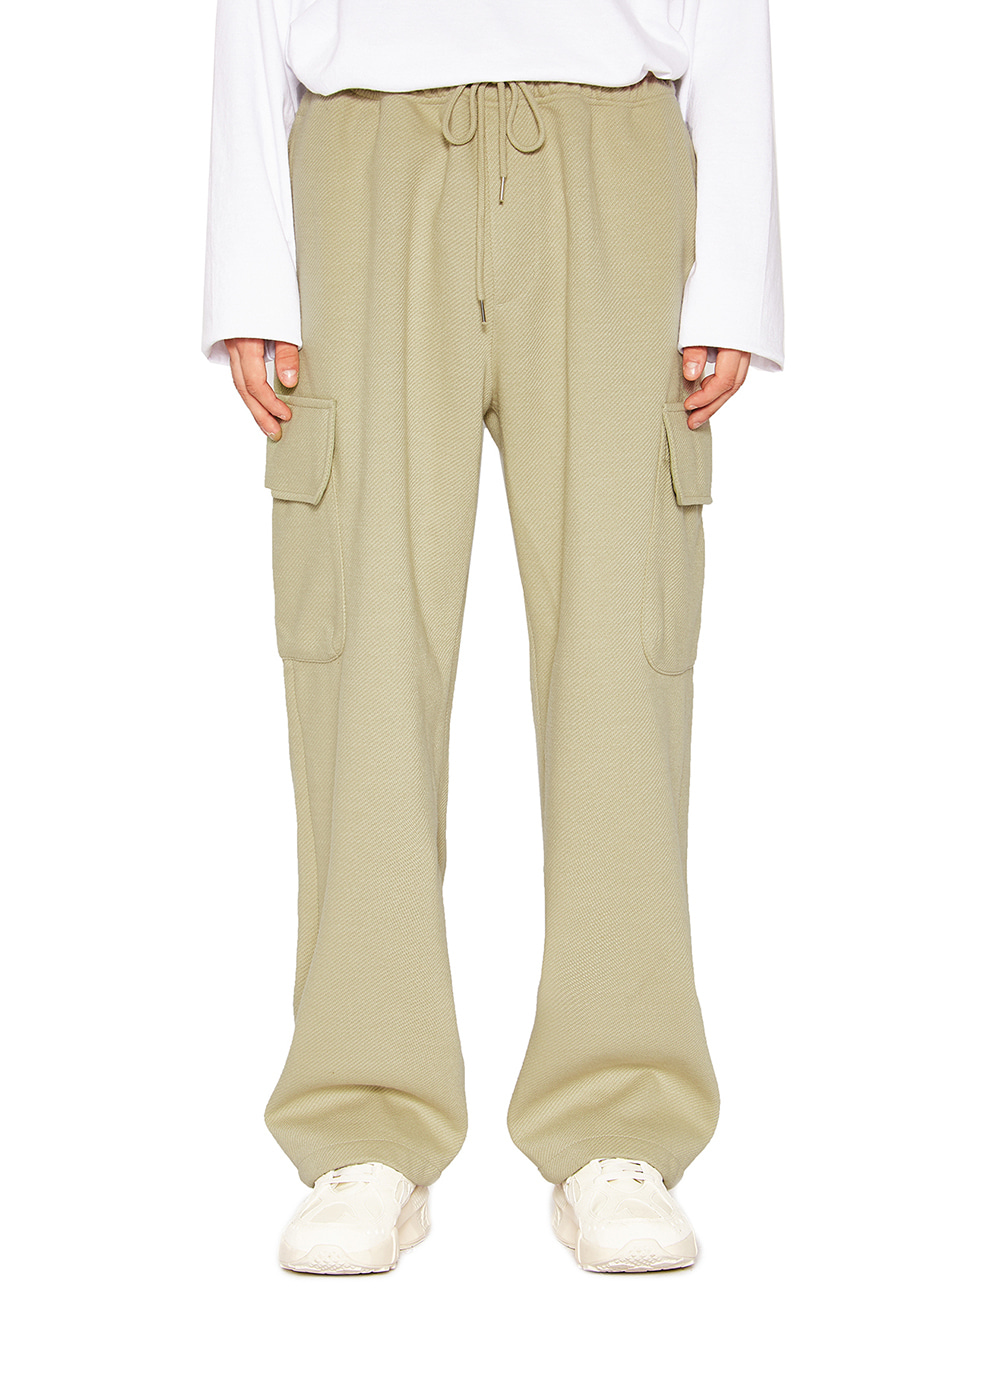 WIDE CARGO PANTS ash Khaki